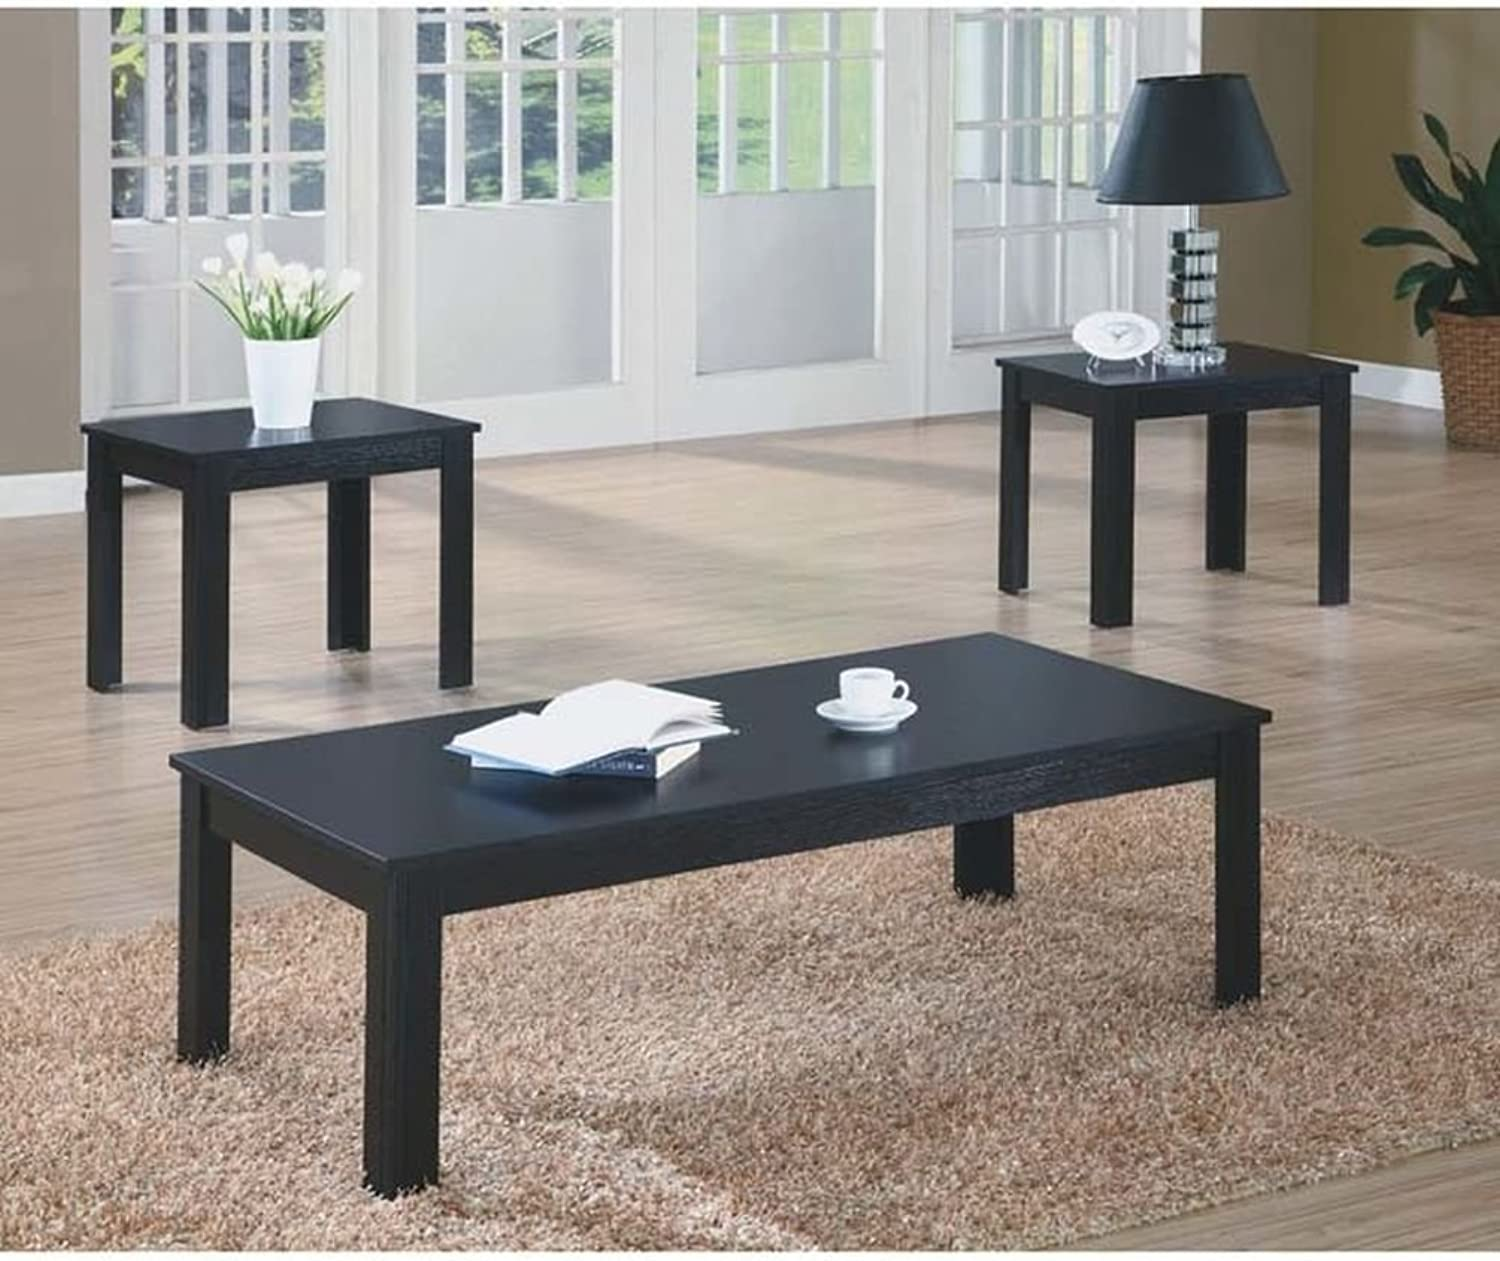 Monarch Specialties 3-Piece Table Set, Black